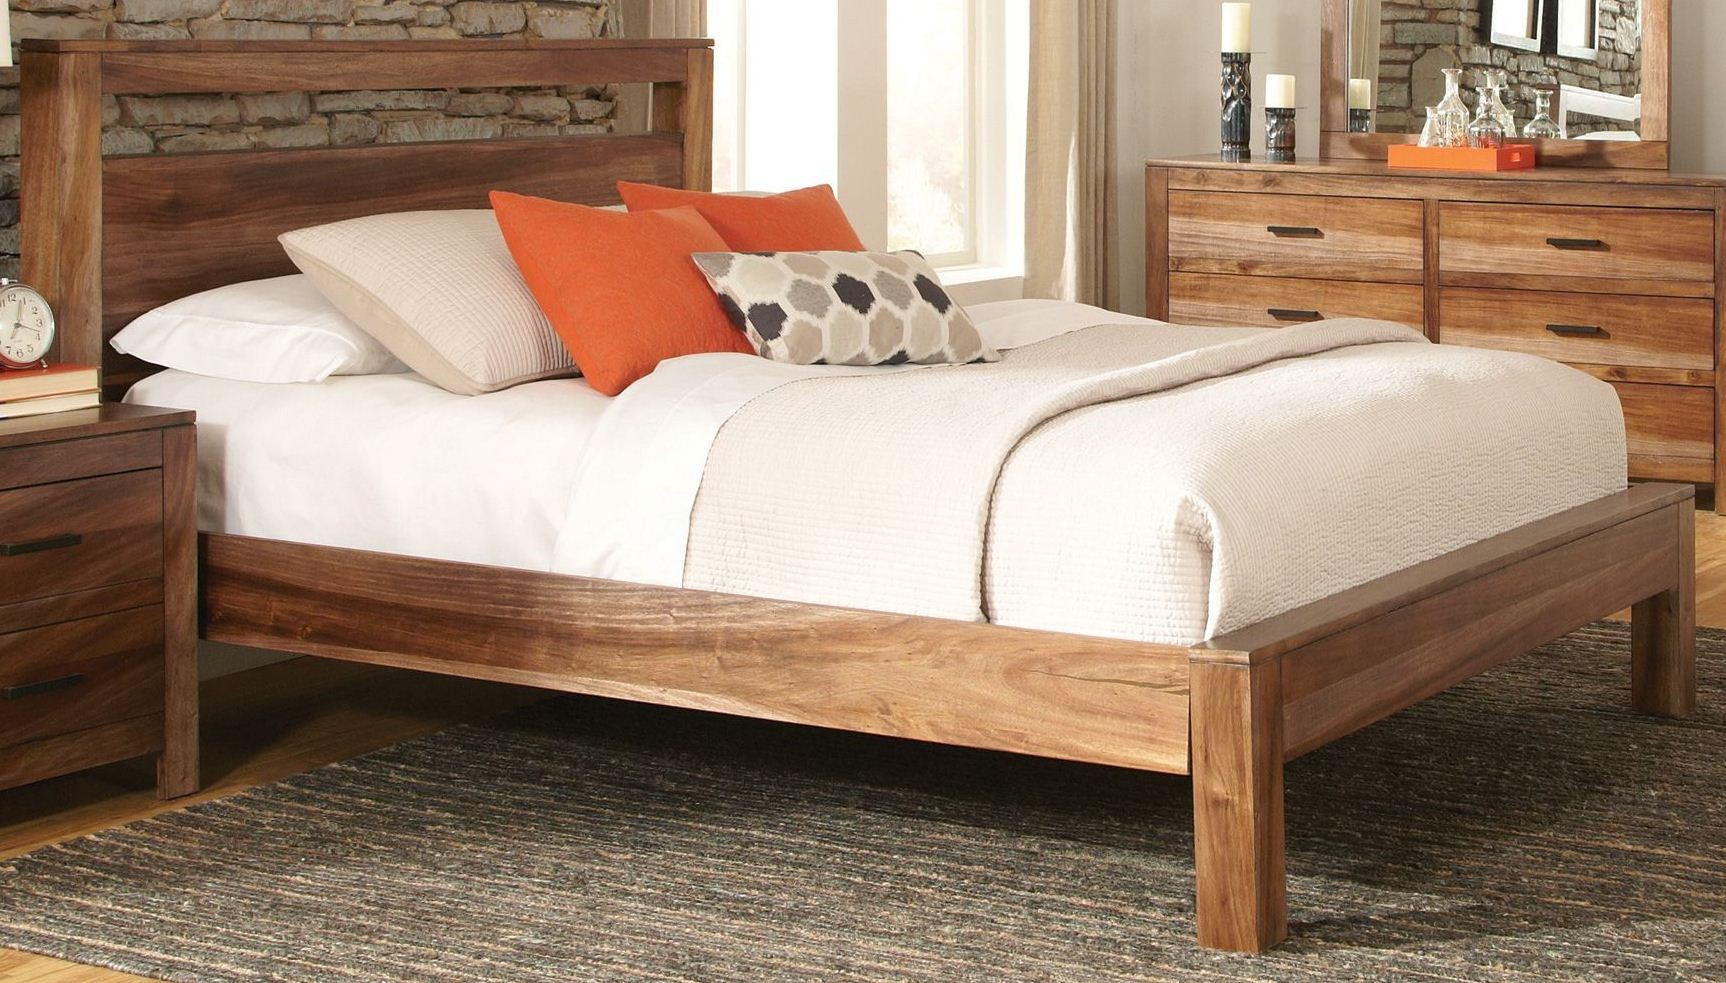 Peyton Queen Platform Bed from Coaster (203651Q) | Coleman ...